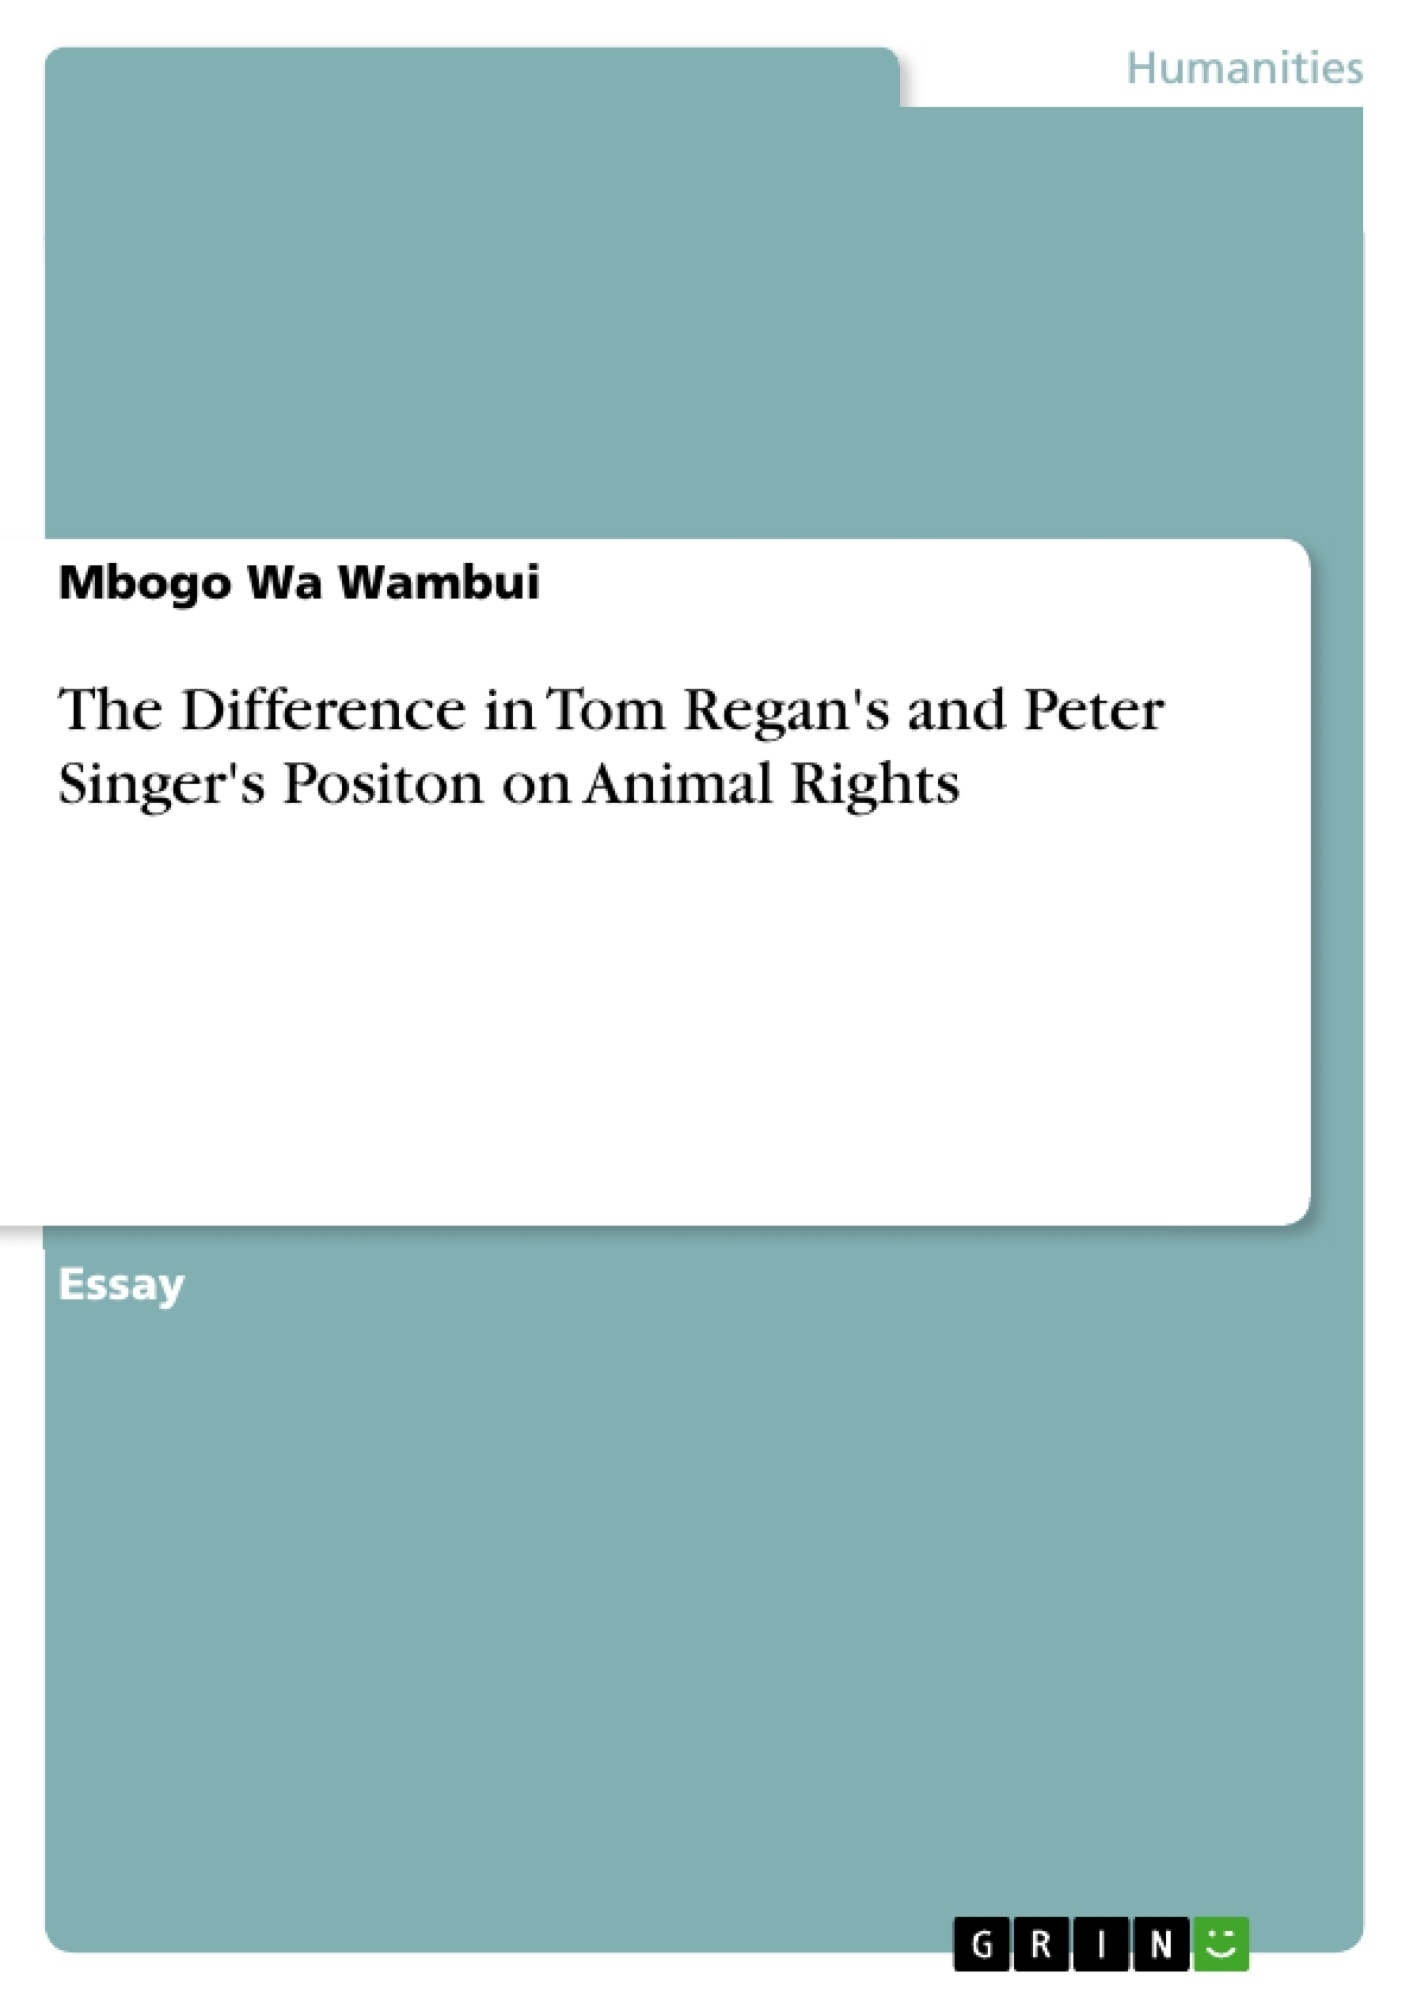 the difference in tom regan s and peter singer s positon on animal  upload your own papers earn money and win an iphone x